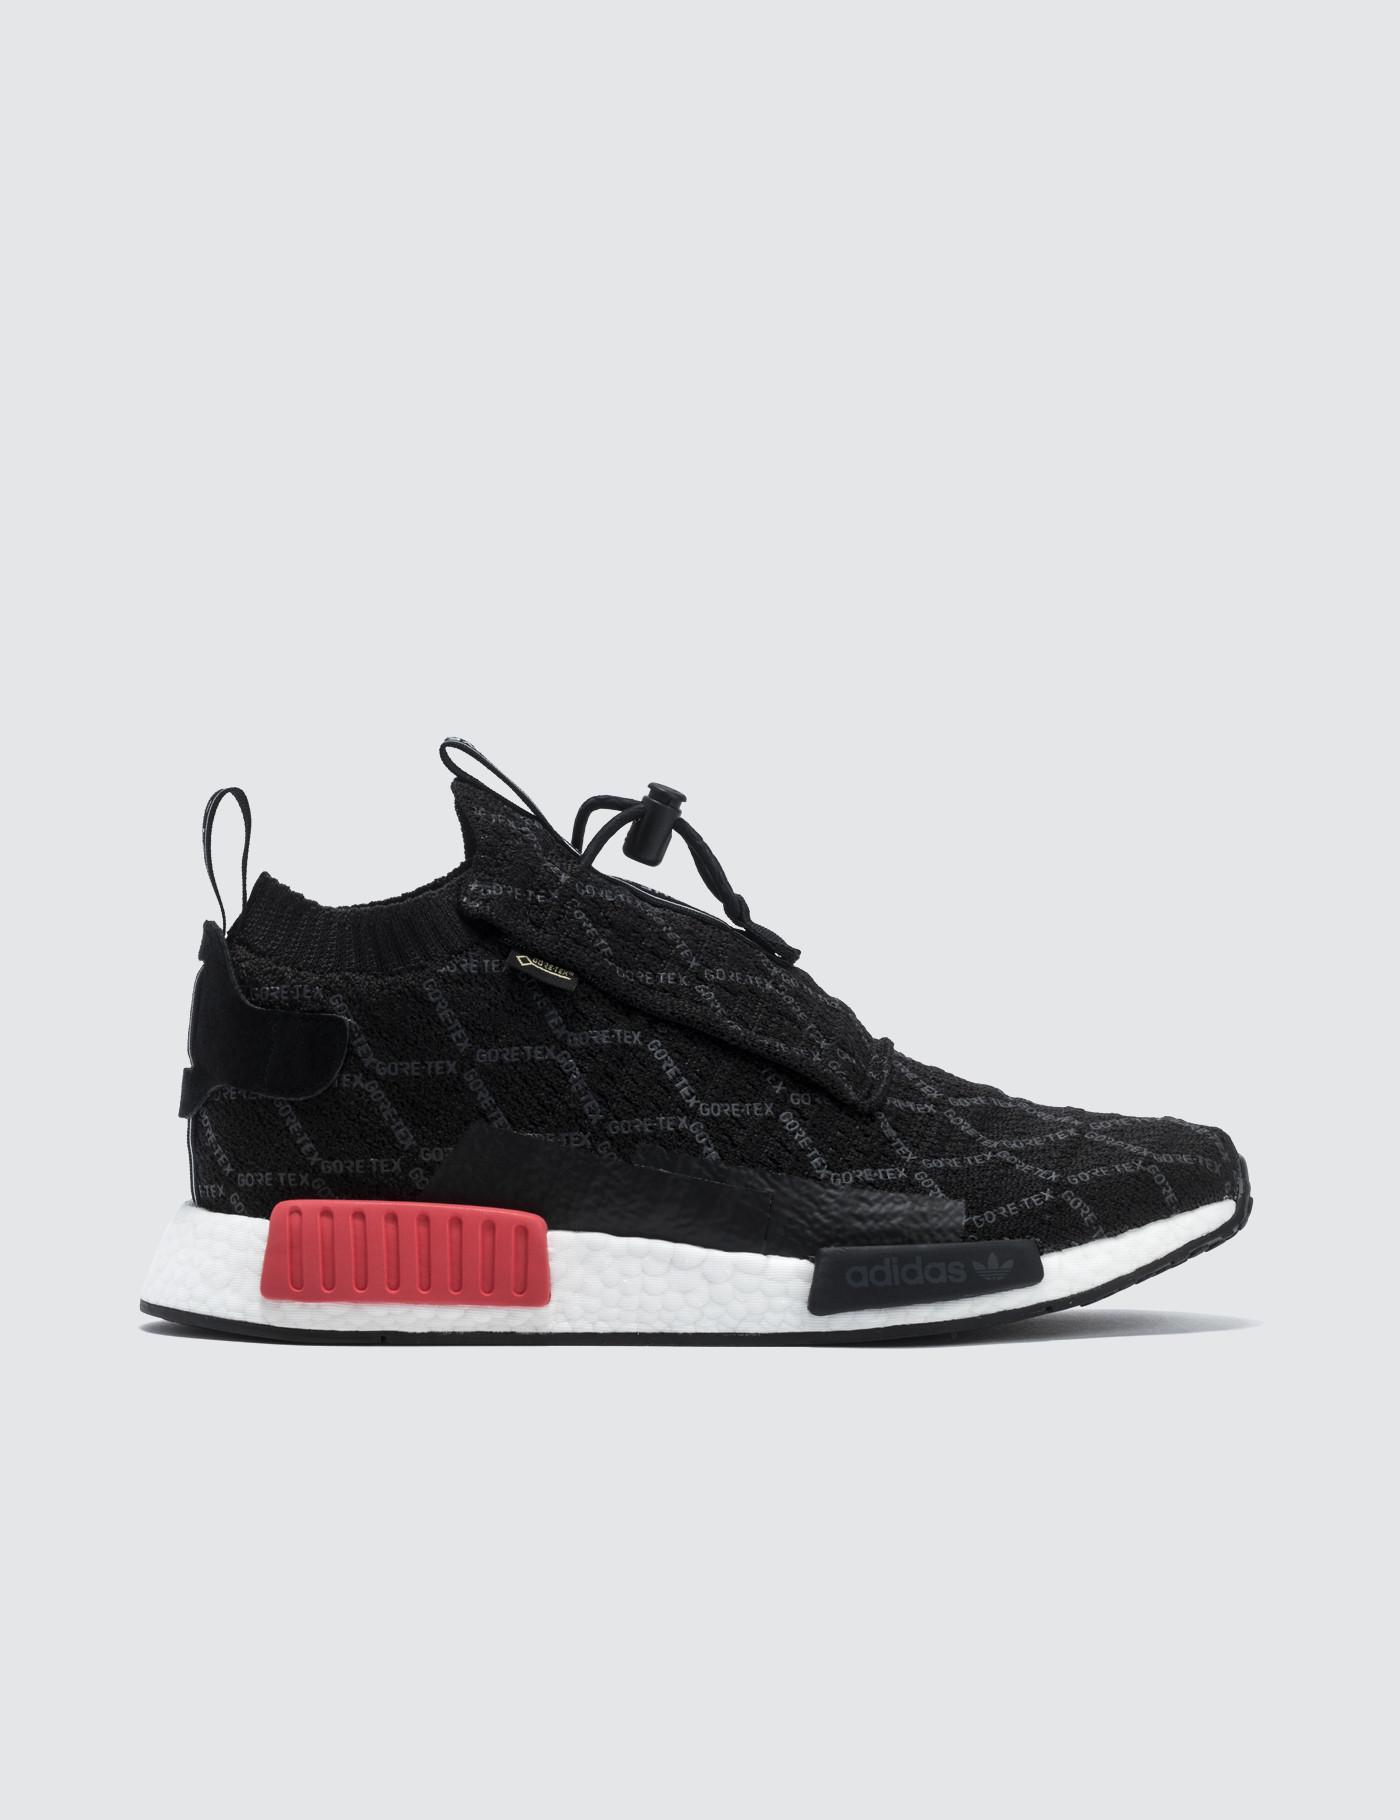 3c5534882 Lyst - adidas Originals Nmd Ts1 Gtx Primeknit in Black for Men